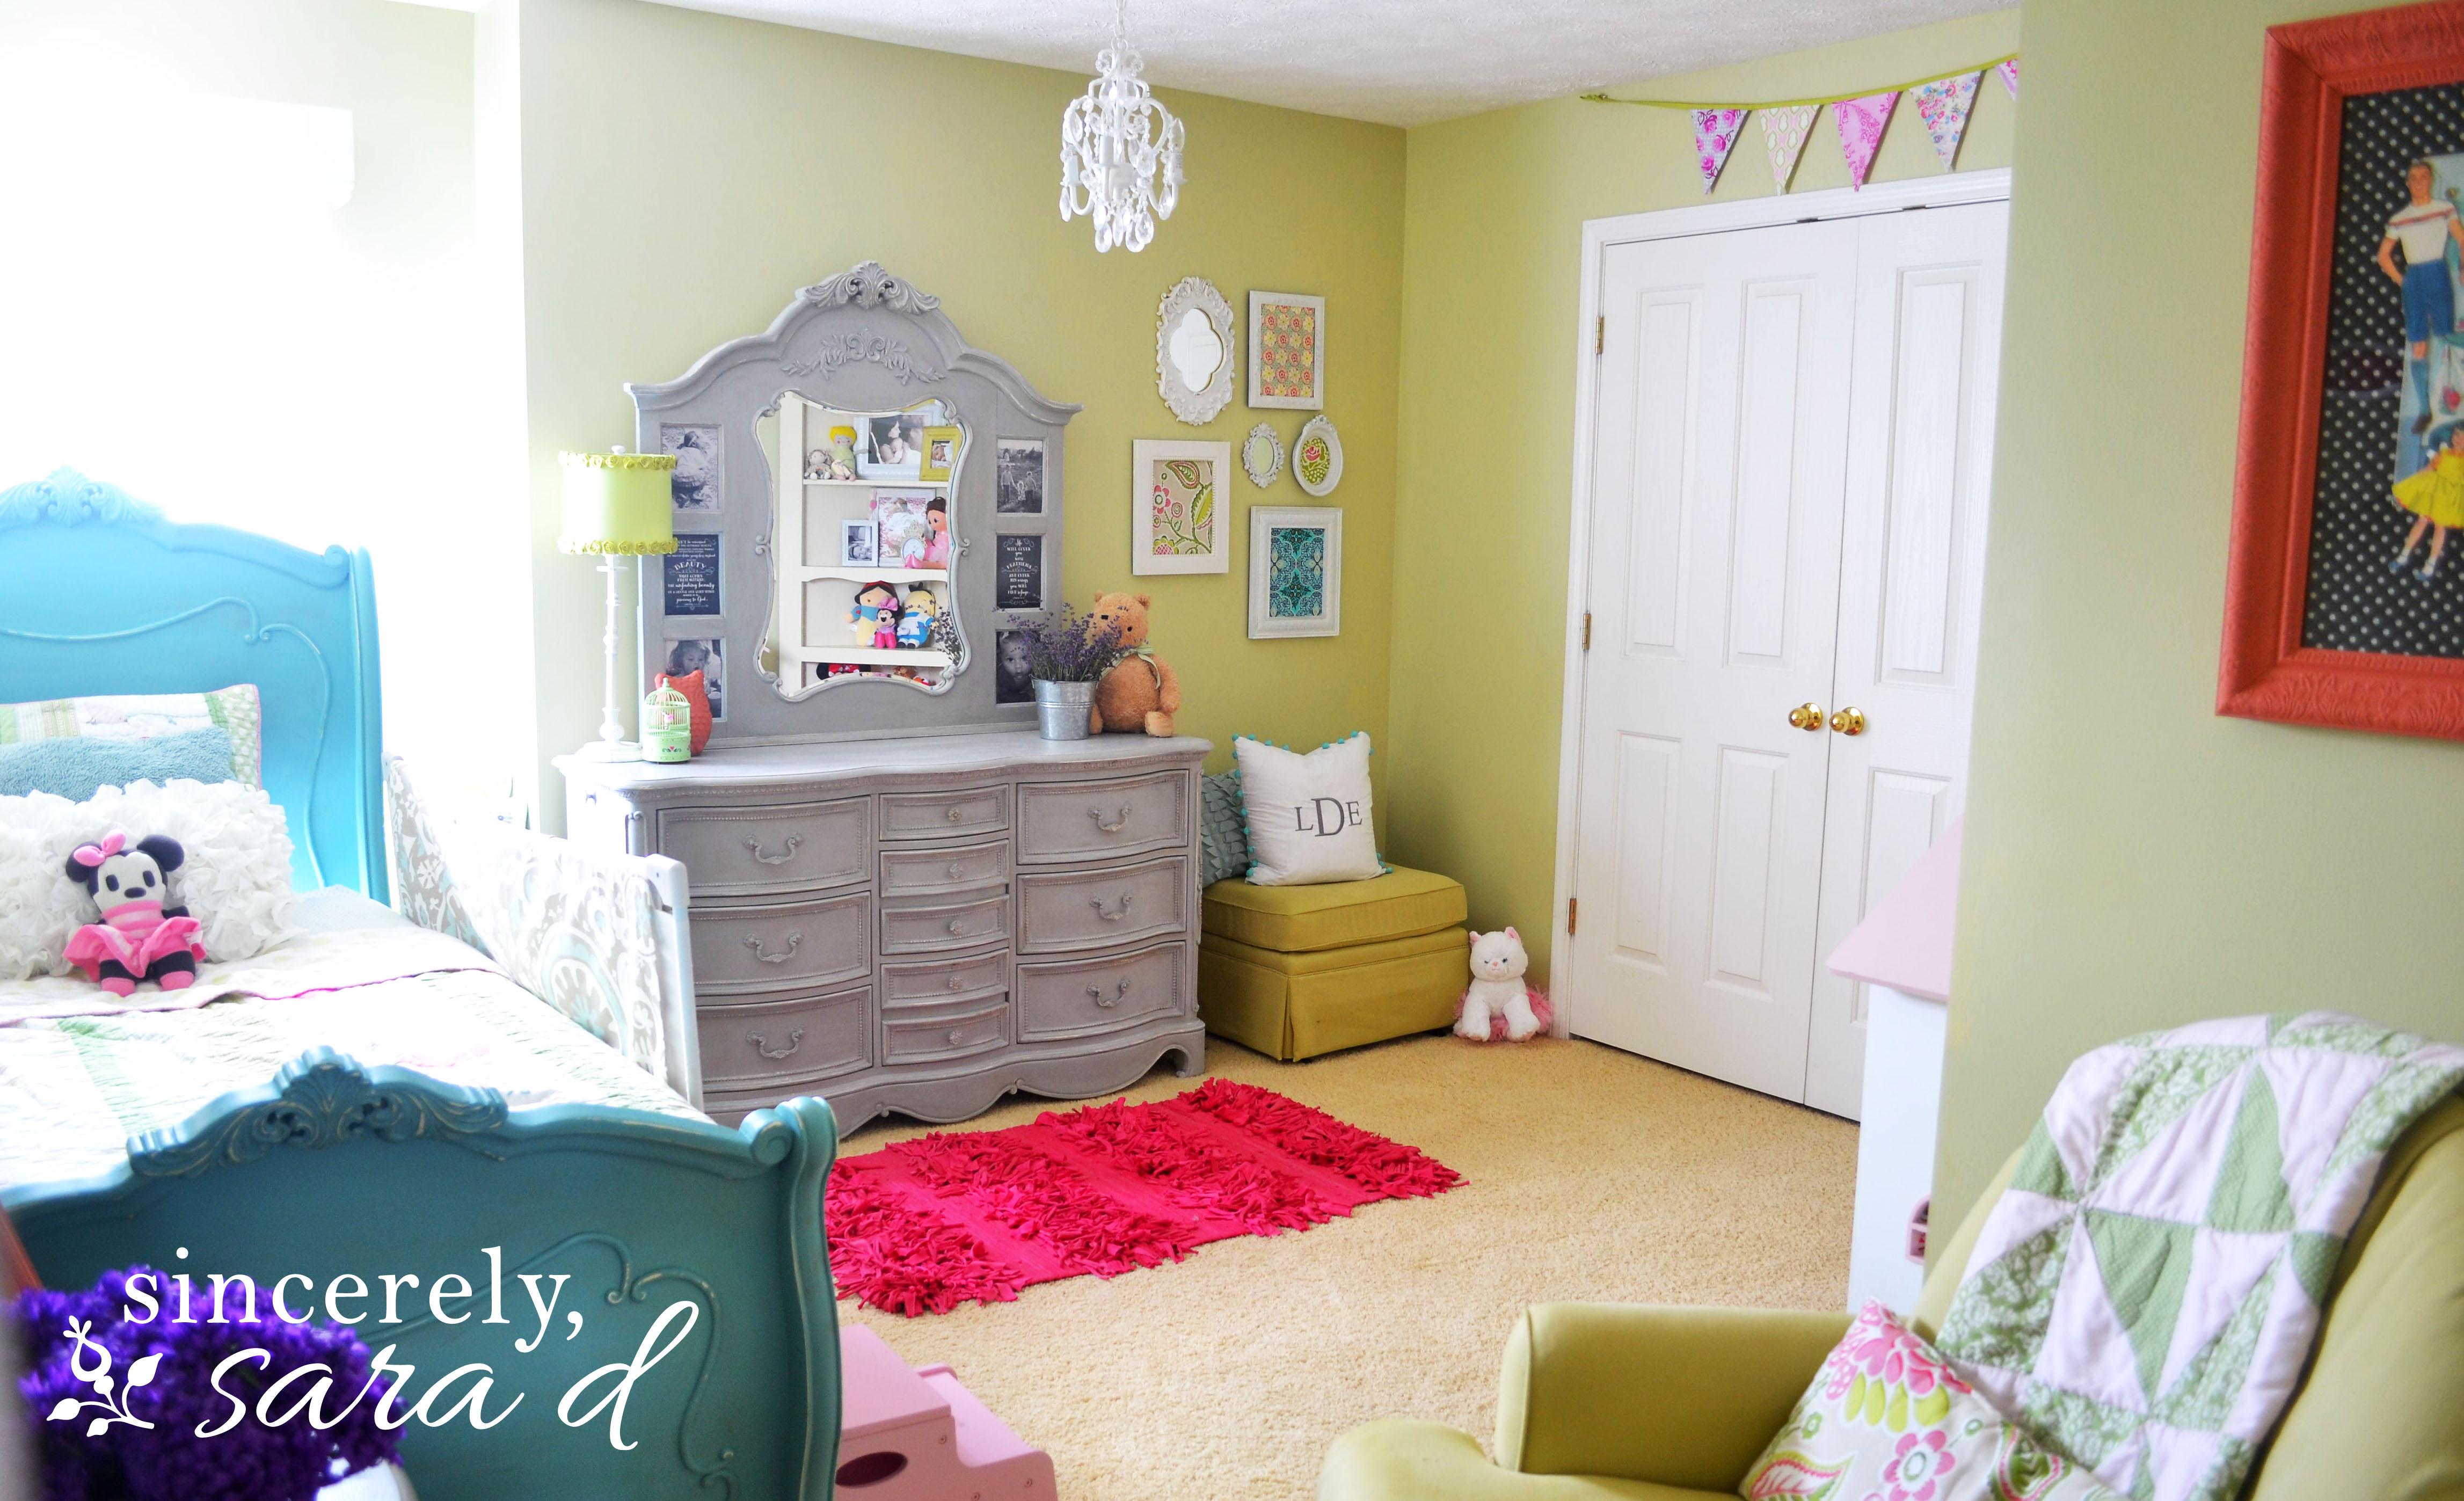 How To Decorate A Small Bedroom For A Teenager The Big Girl Room Redo Sincerely Sara D